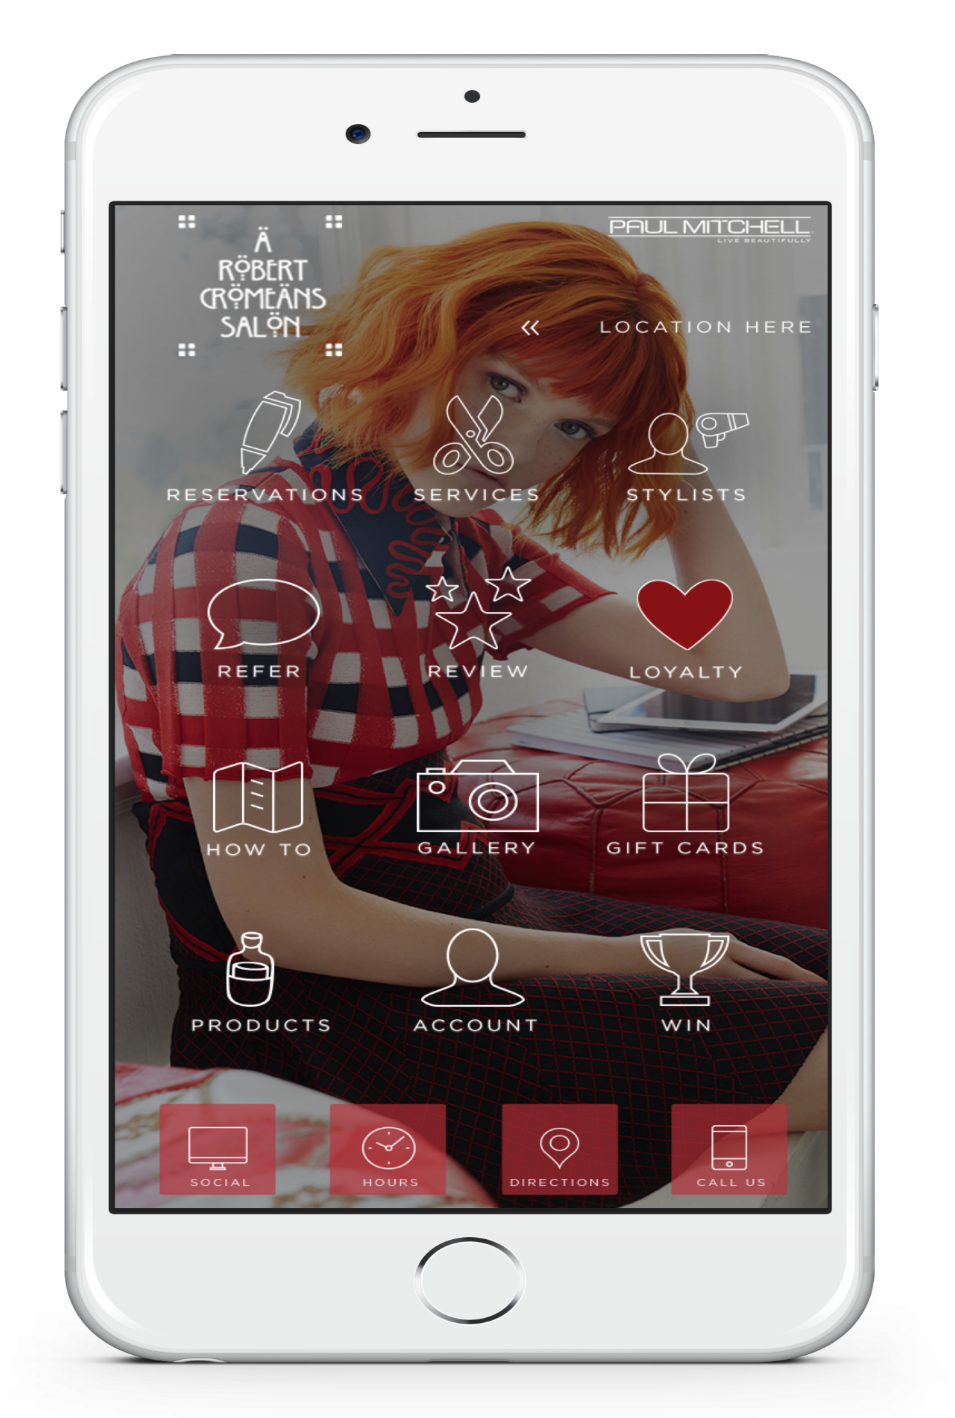 Try the Walk In Salon, A Robert Cromeans Salon, Mobile App